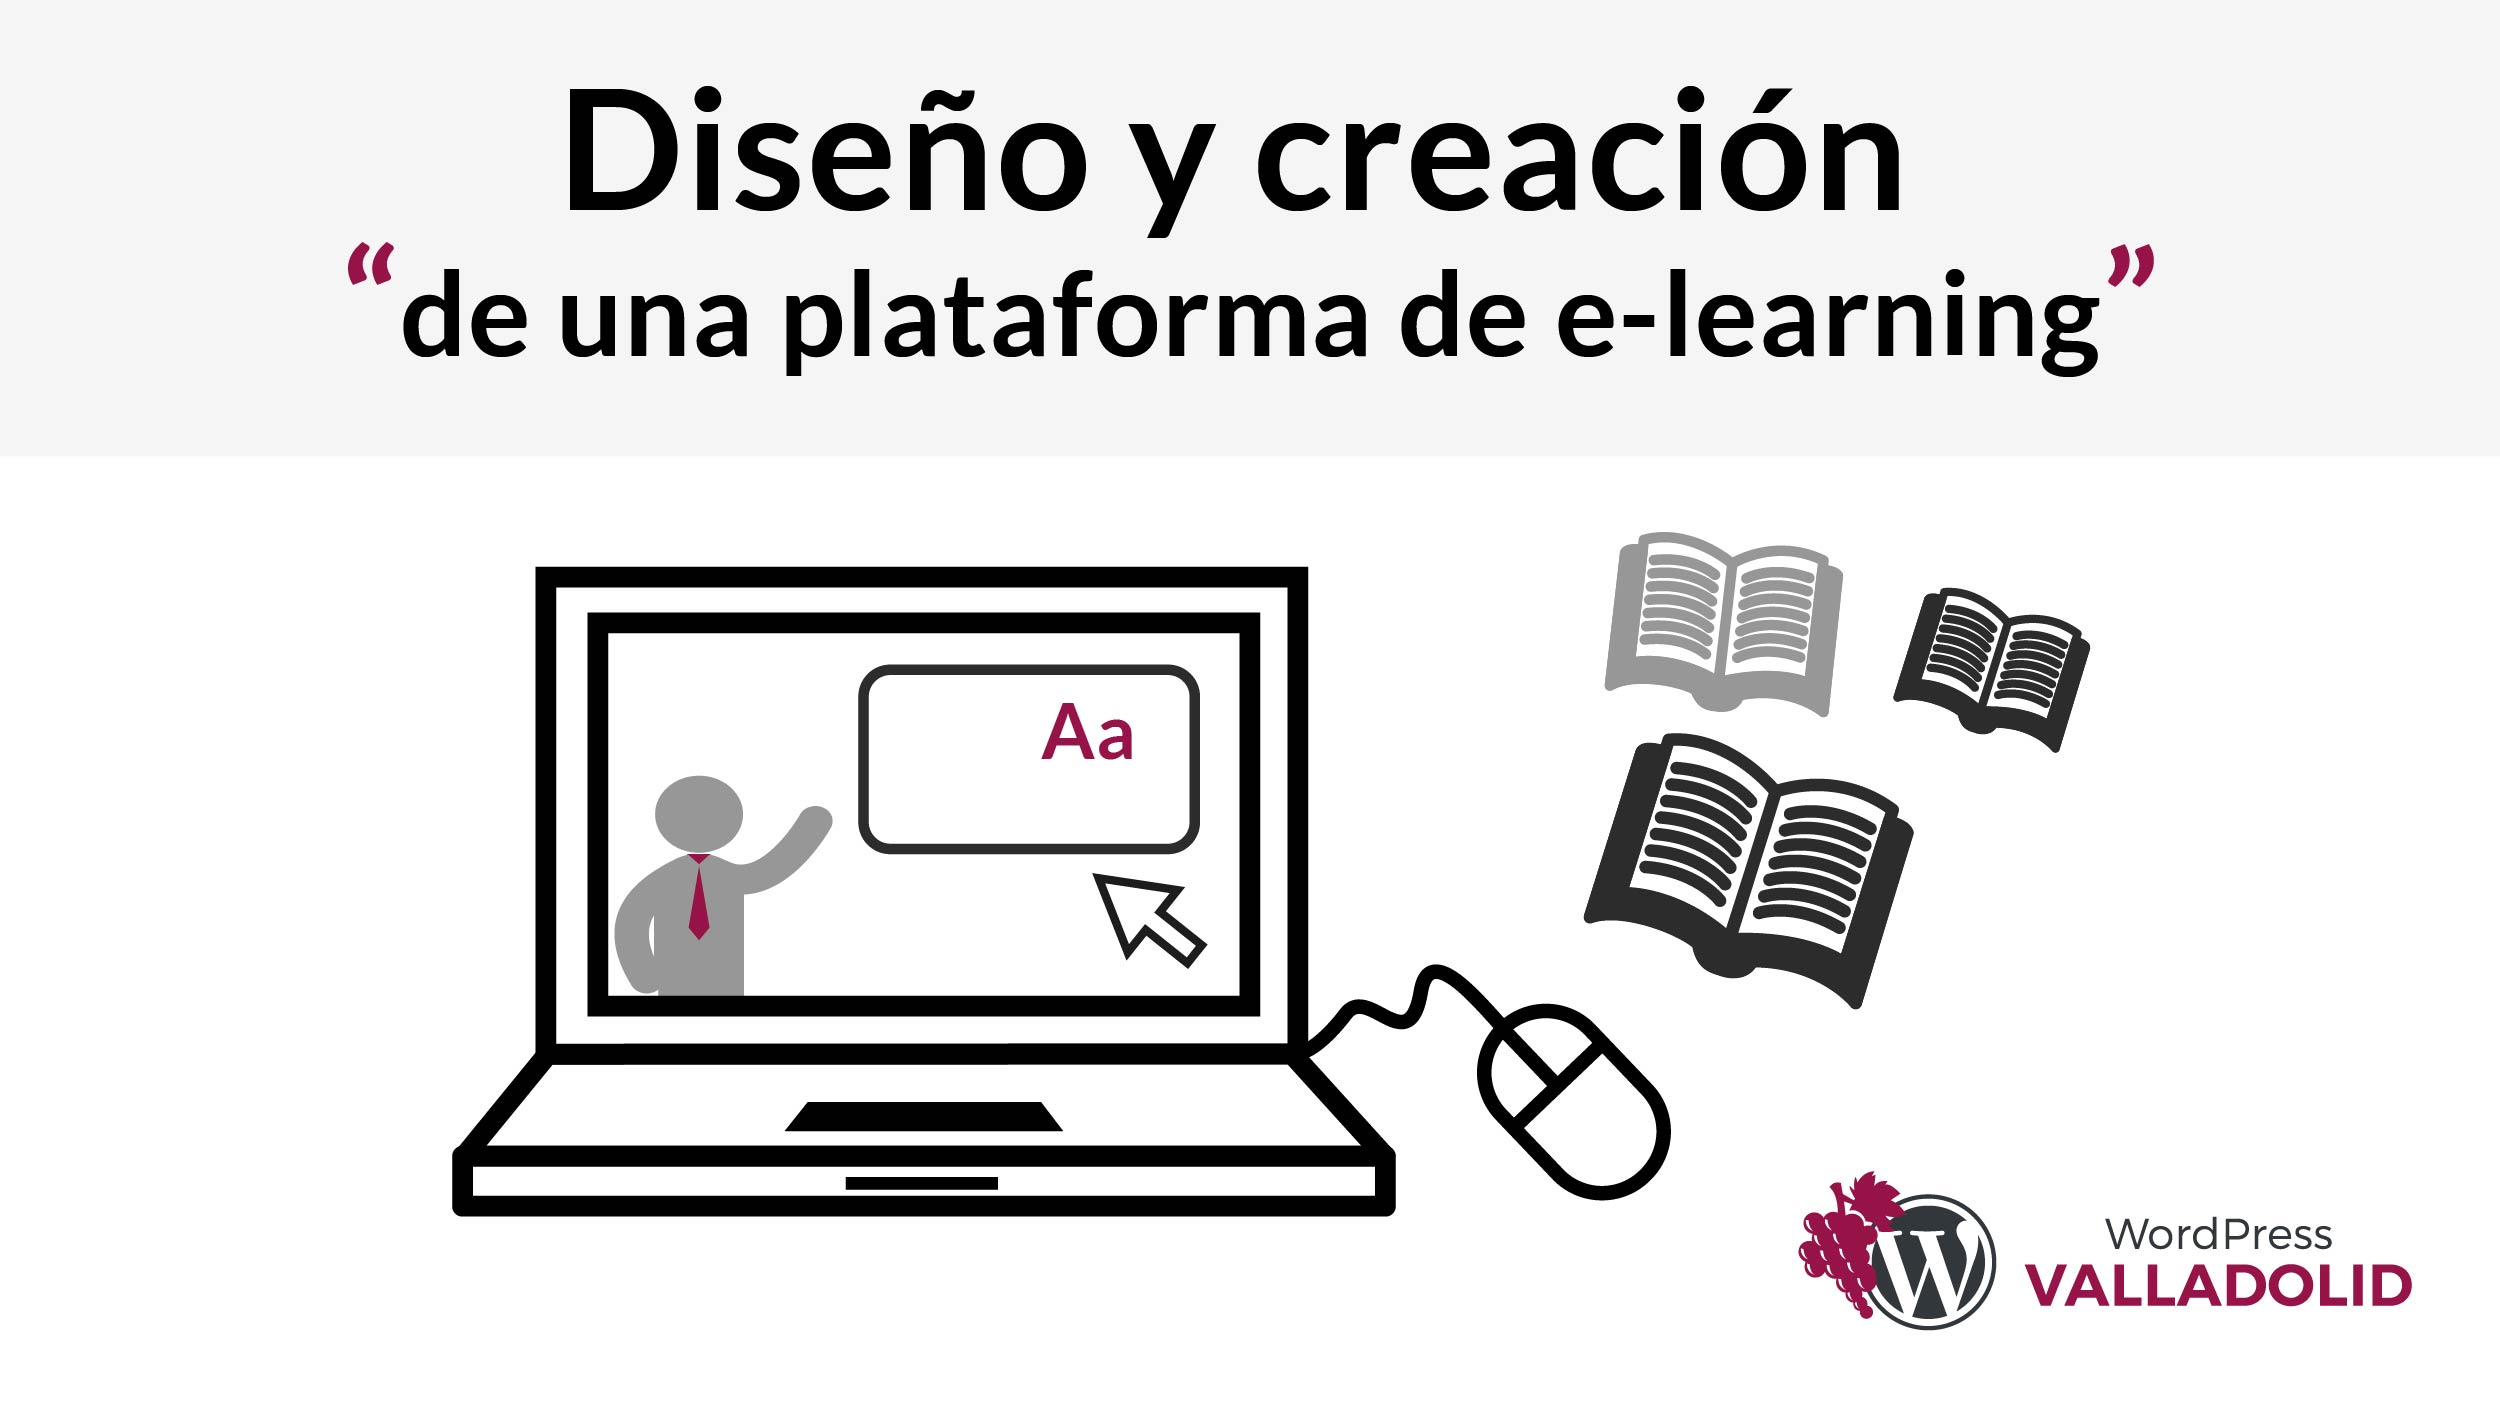 WordPress-Valladolid-Meetup-diseño-y-creacion-plataforma-elearning